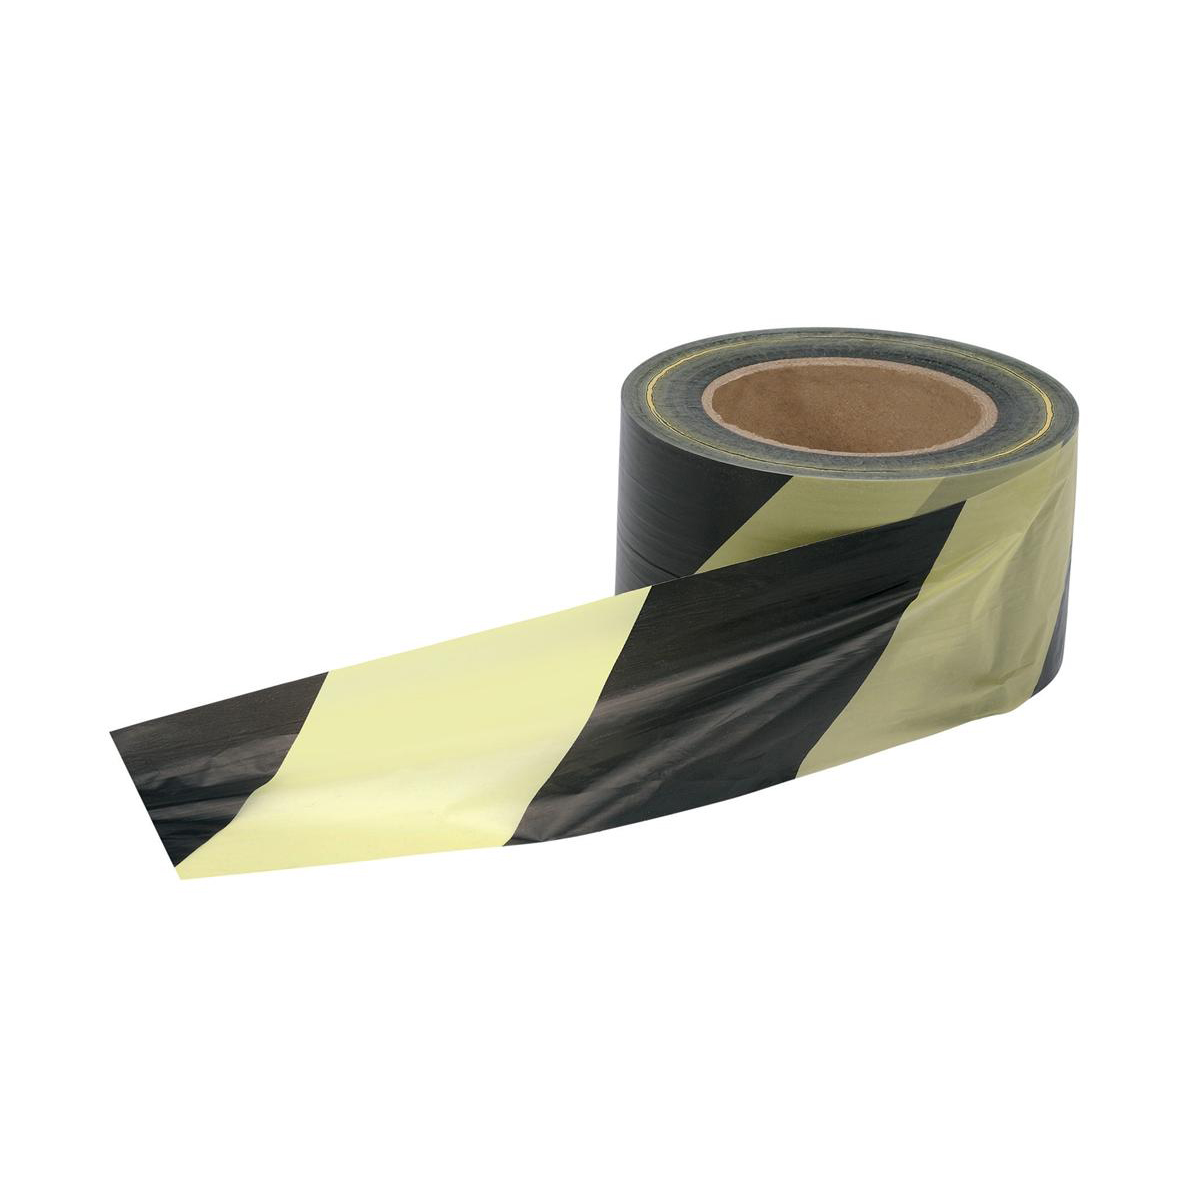 Image for 5 Star Office Barrier Tape in Dispenser Box 70mmx500m Yellow and Black